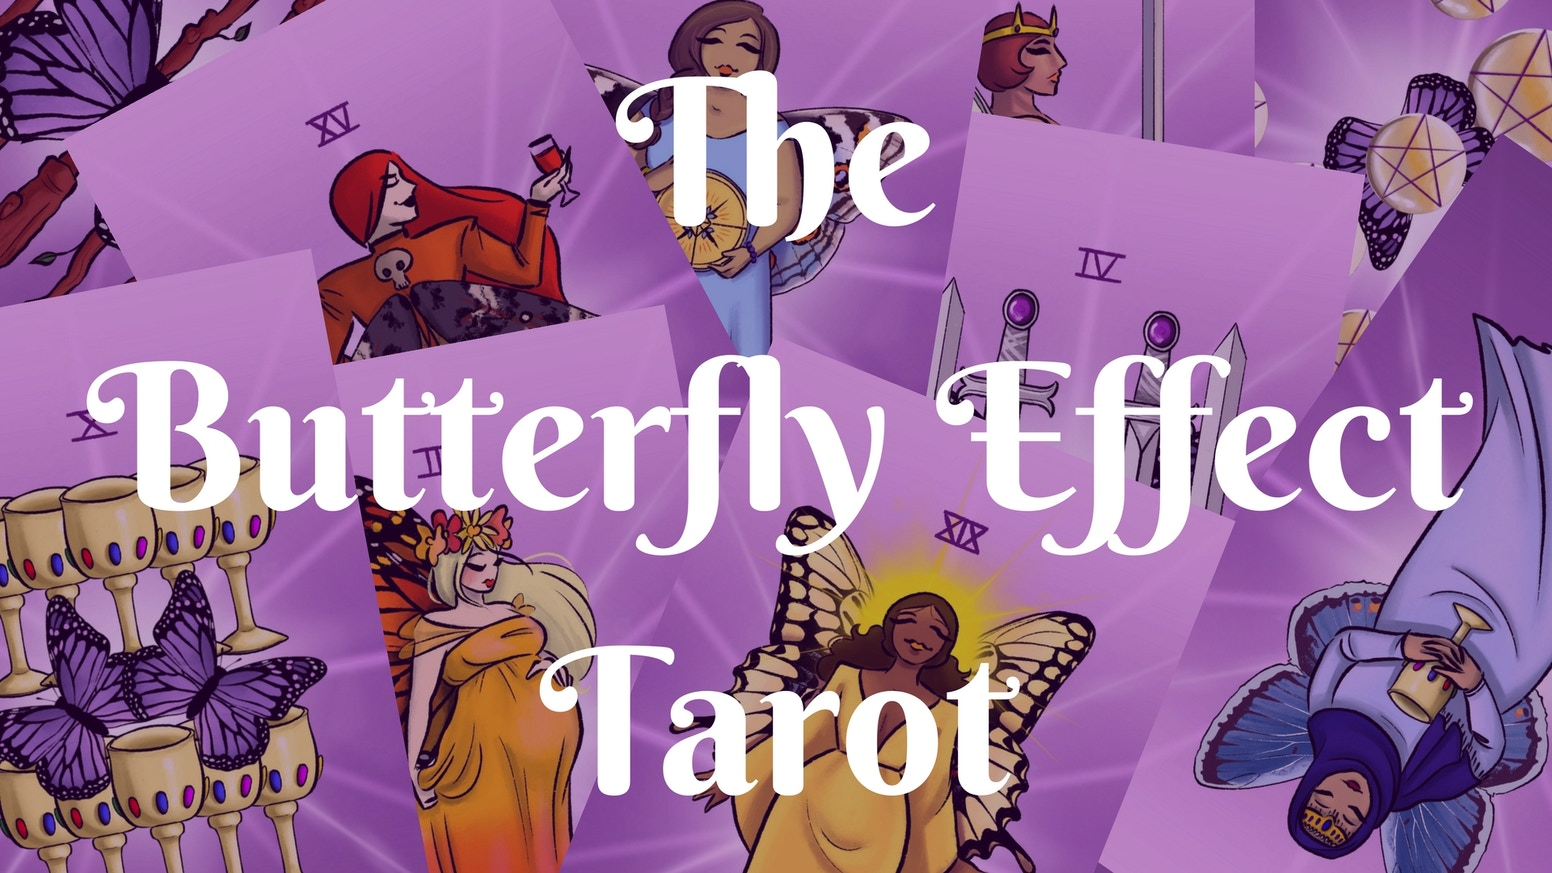 The Butterfly Effect Tarot explores the Tarot through the lens of Body Positivity and Diversity.